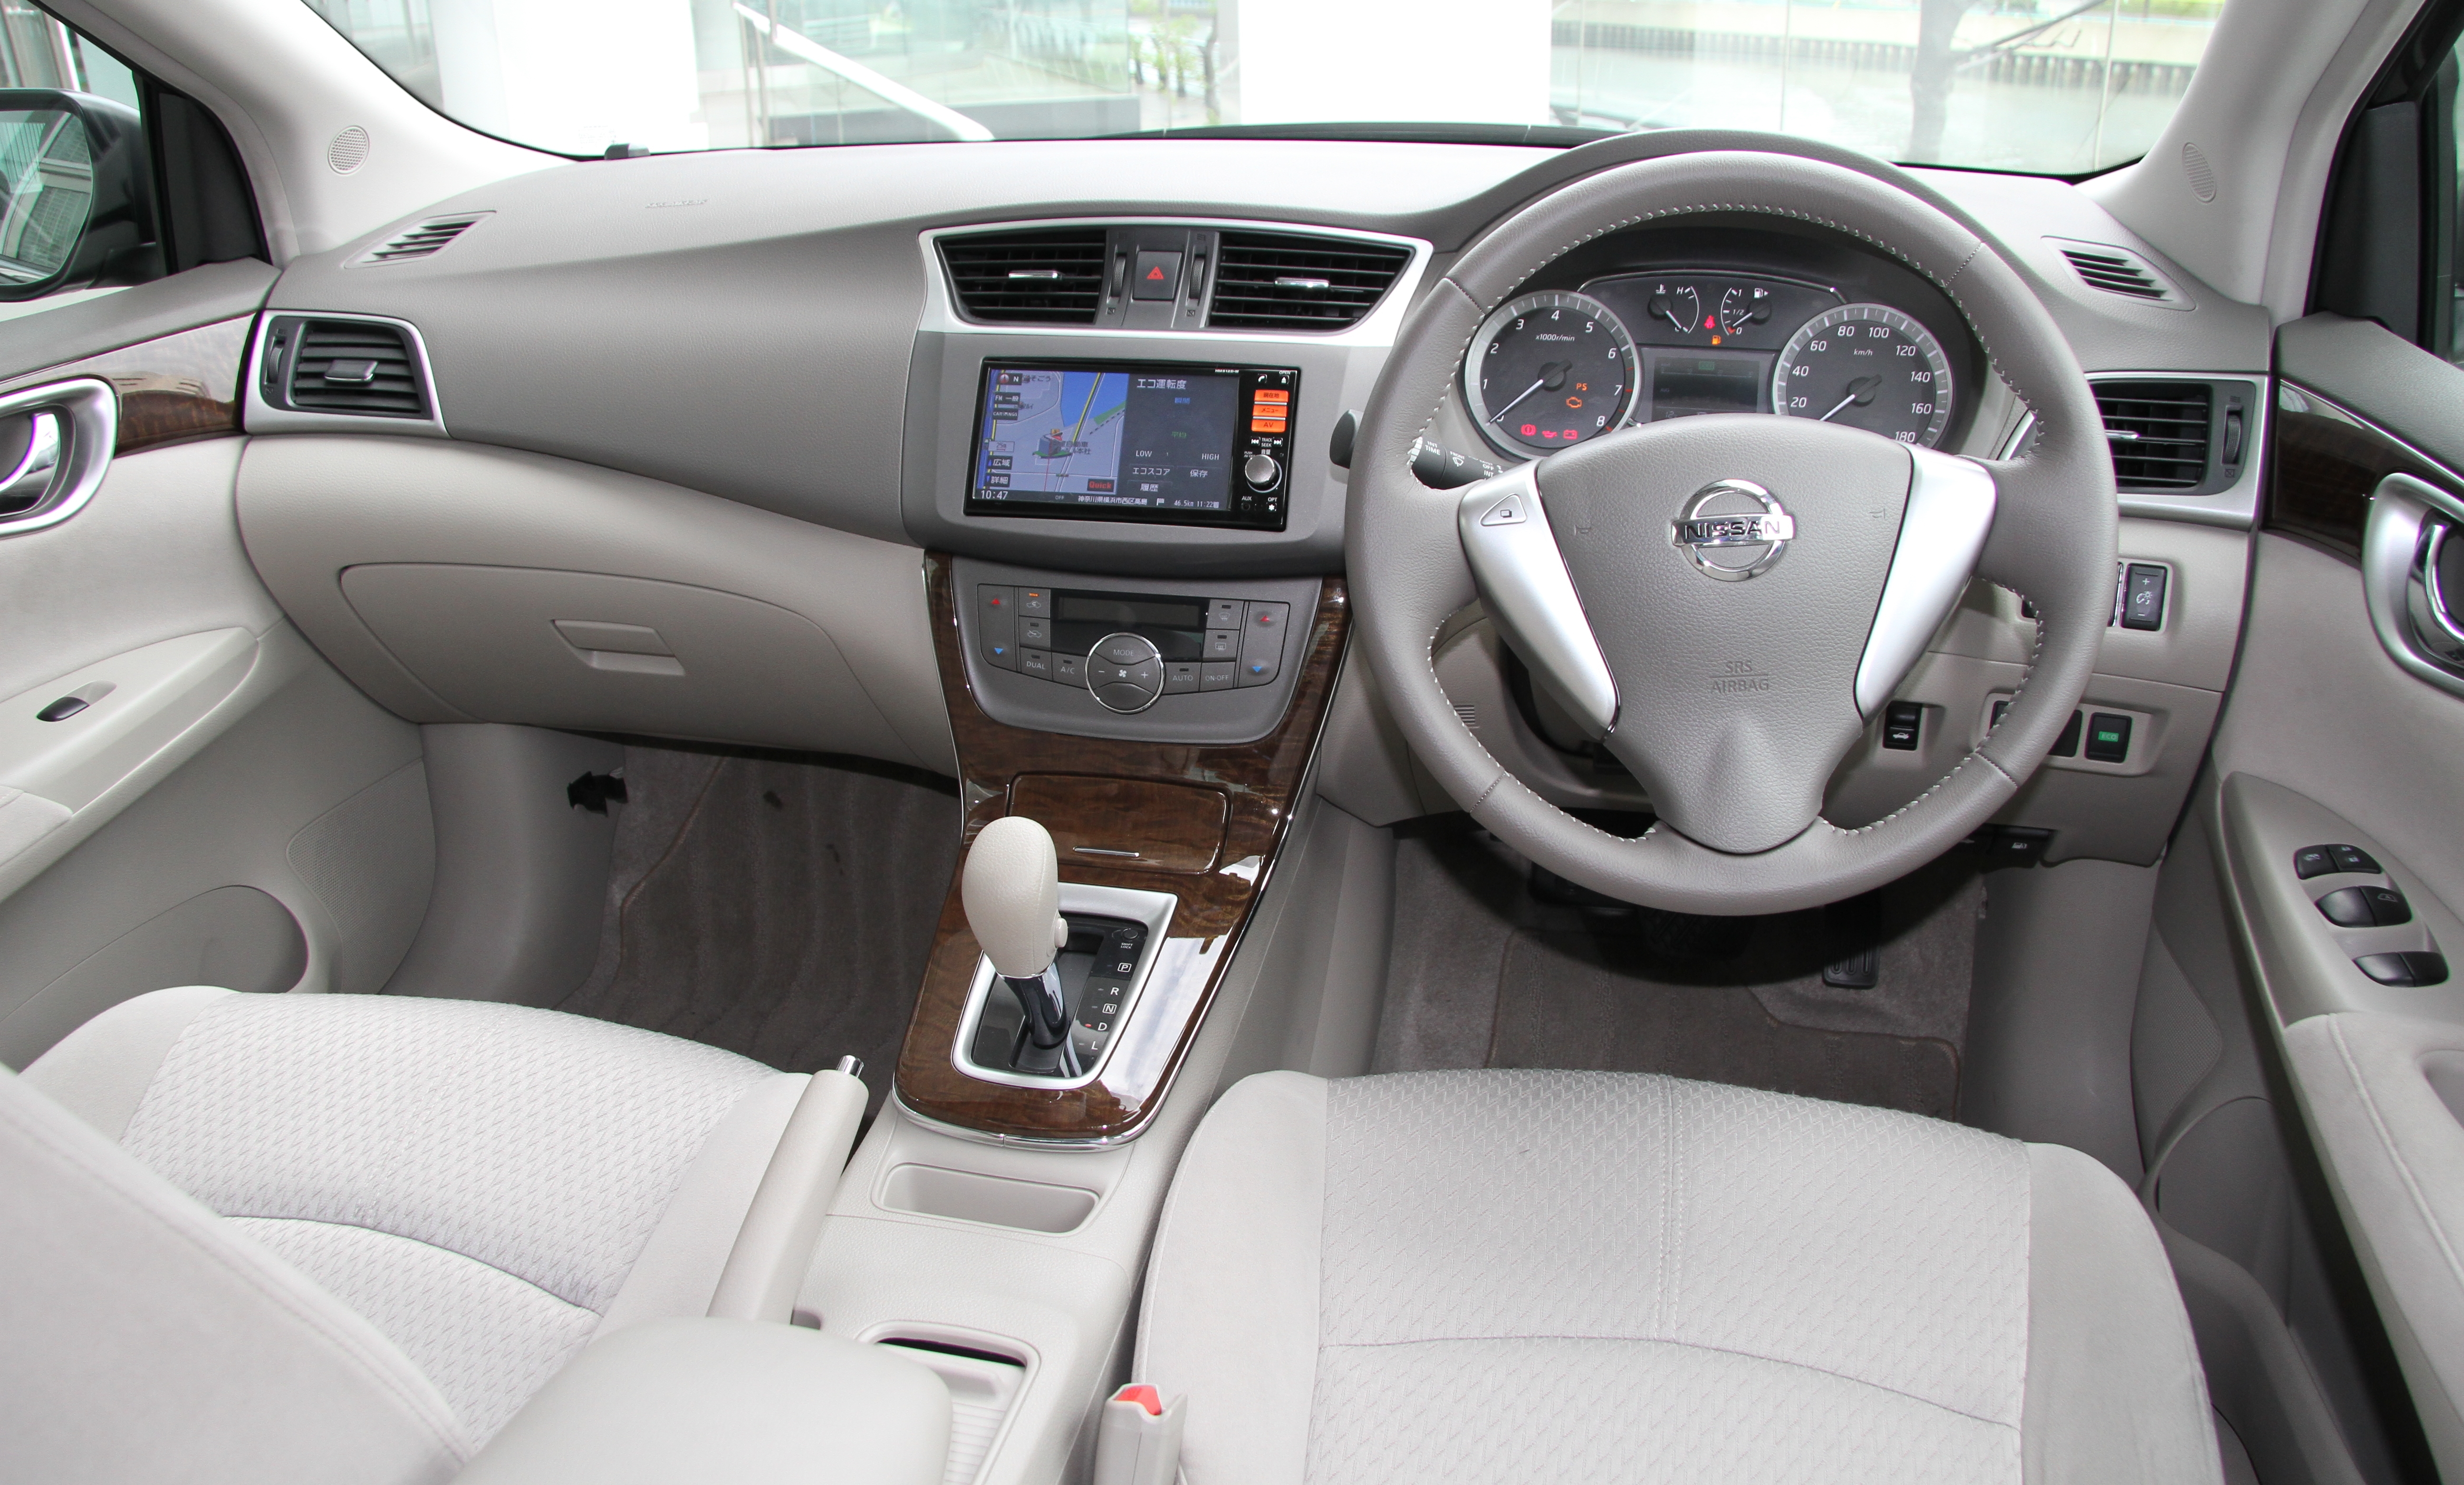 nissan march 2015 with File Nissan Sylphy B17 G Interior on Micra likewise Nissan Micra additionally 2018 likewise Watch furthermore 2015 Ford Focus Se Sedan Jp 01.